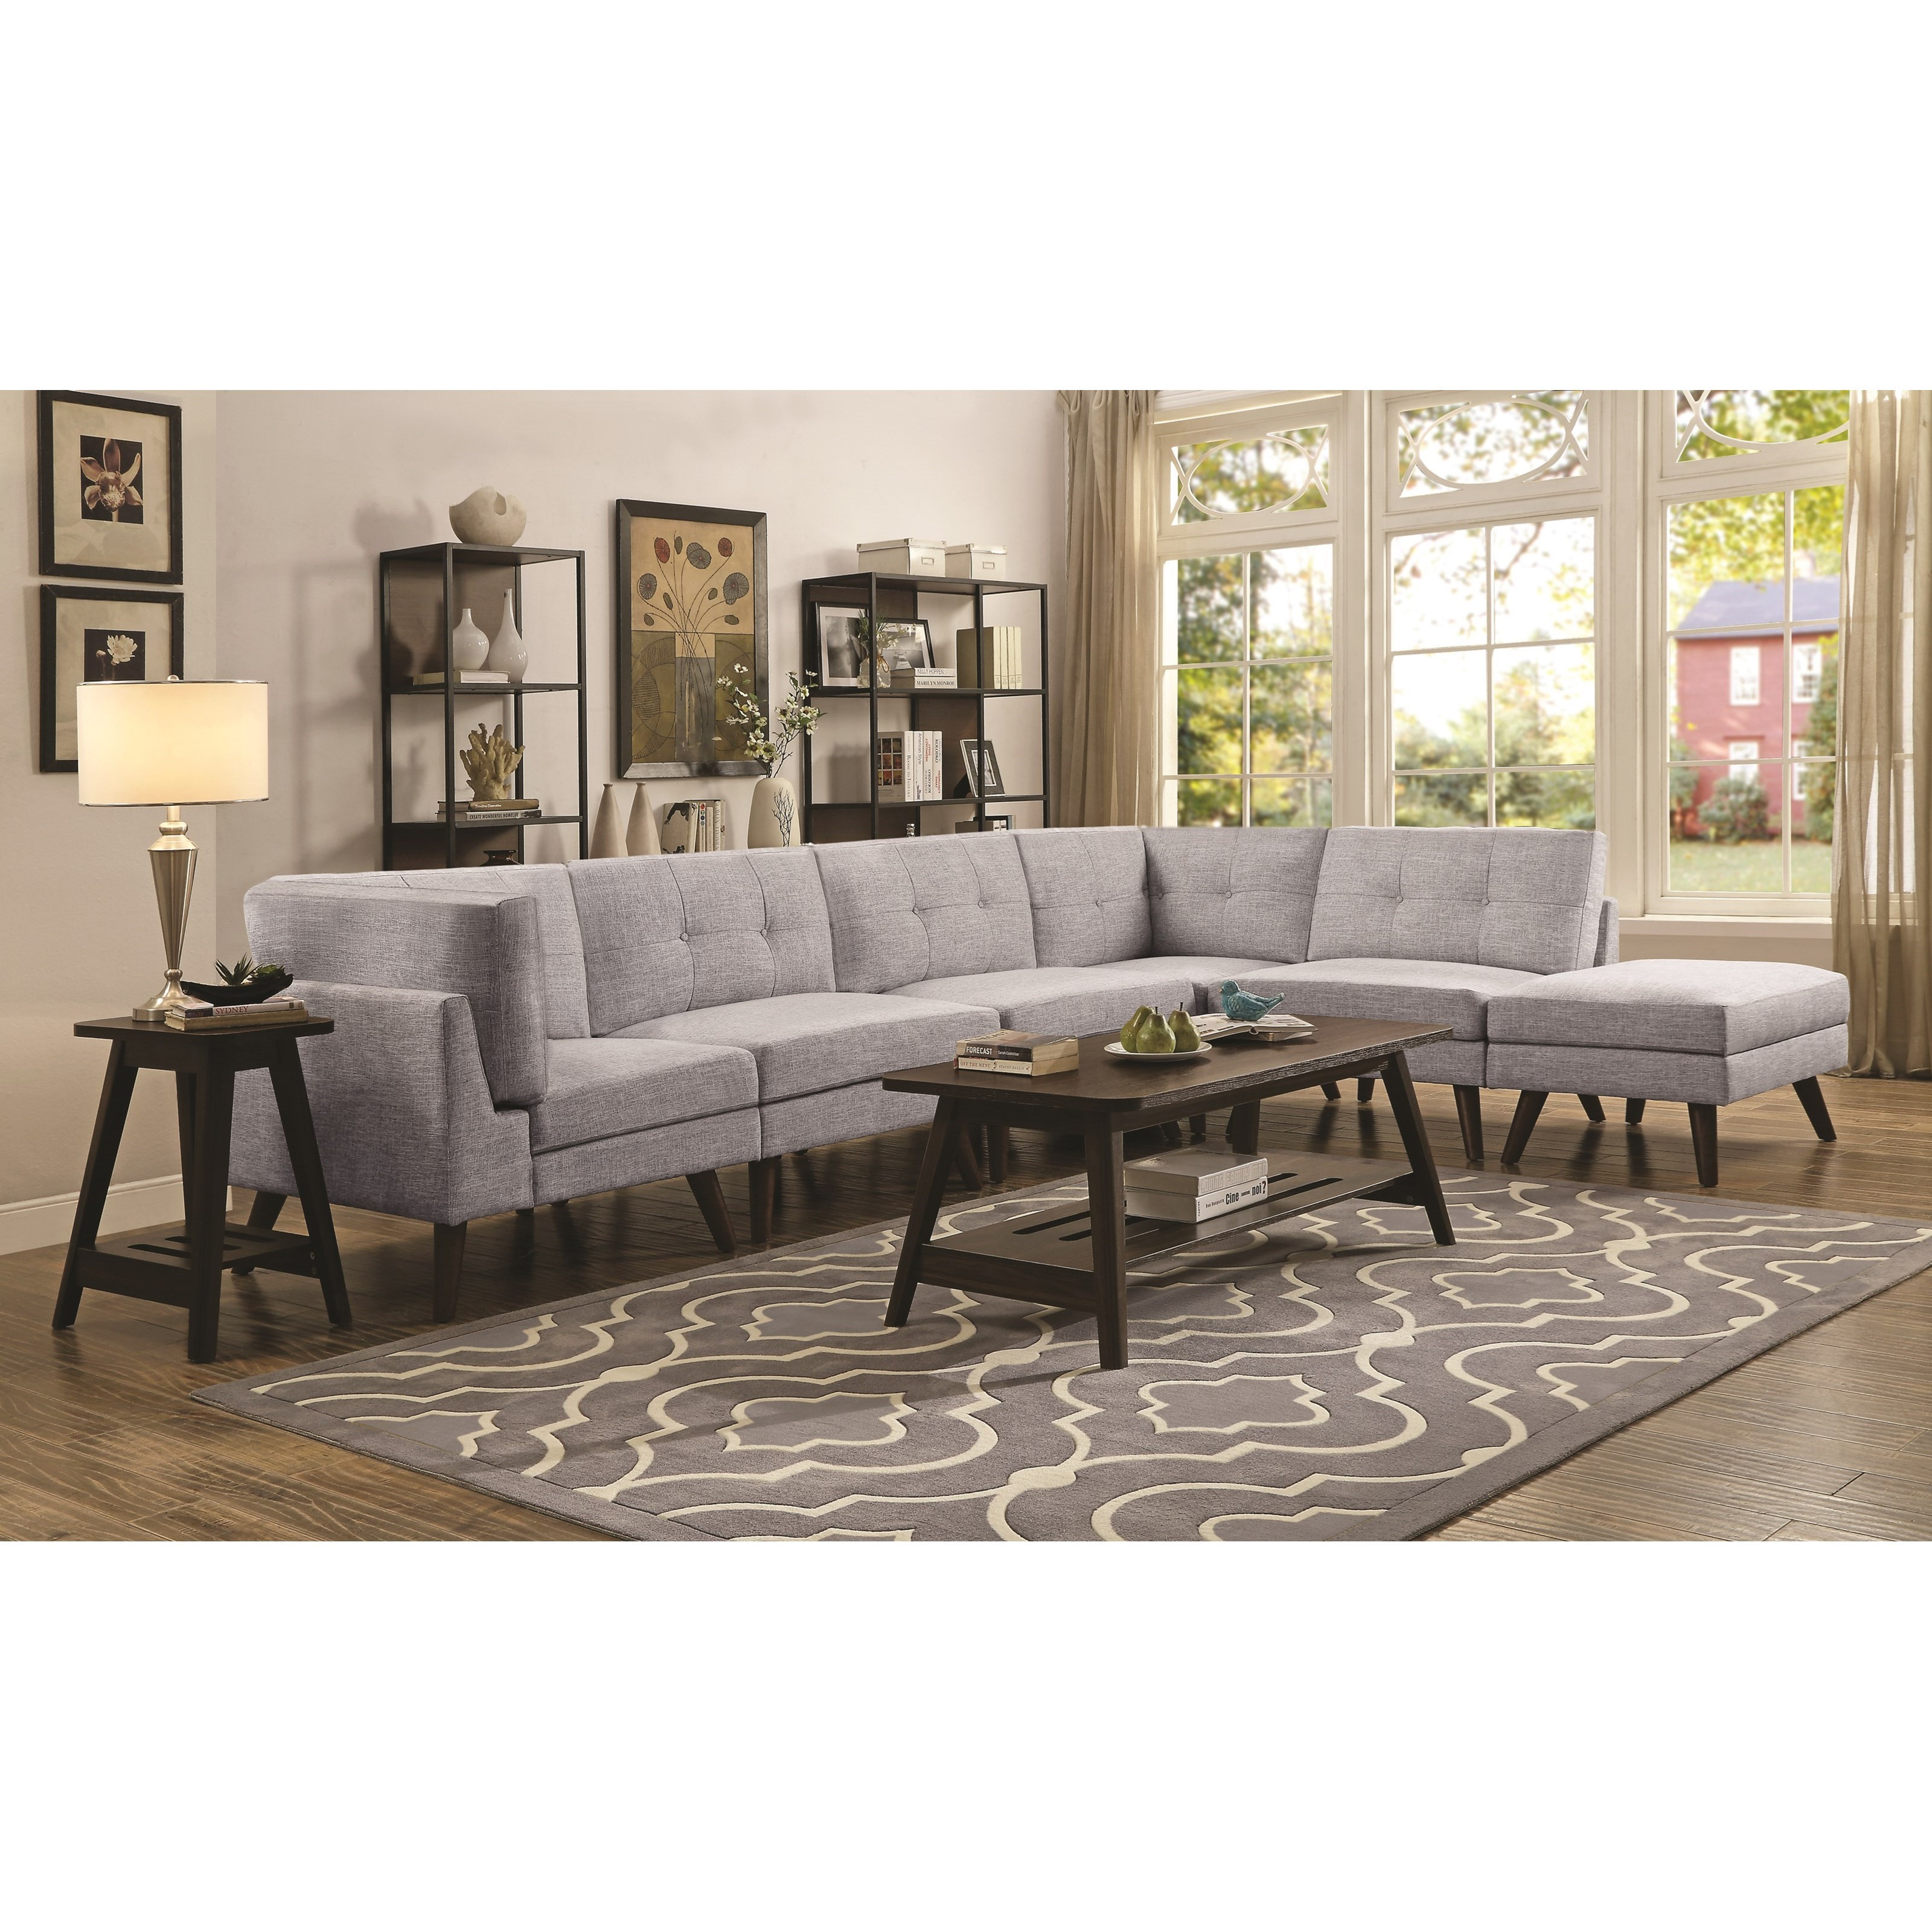 sectional amazing dune sofas left jessa decoration to piece arm place pertaining contemporary bobs right facing